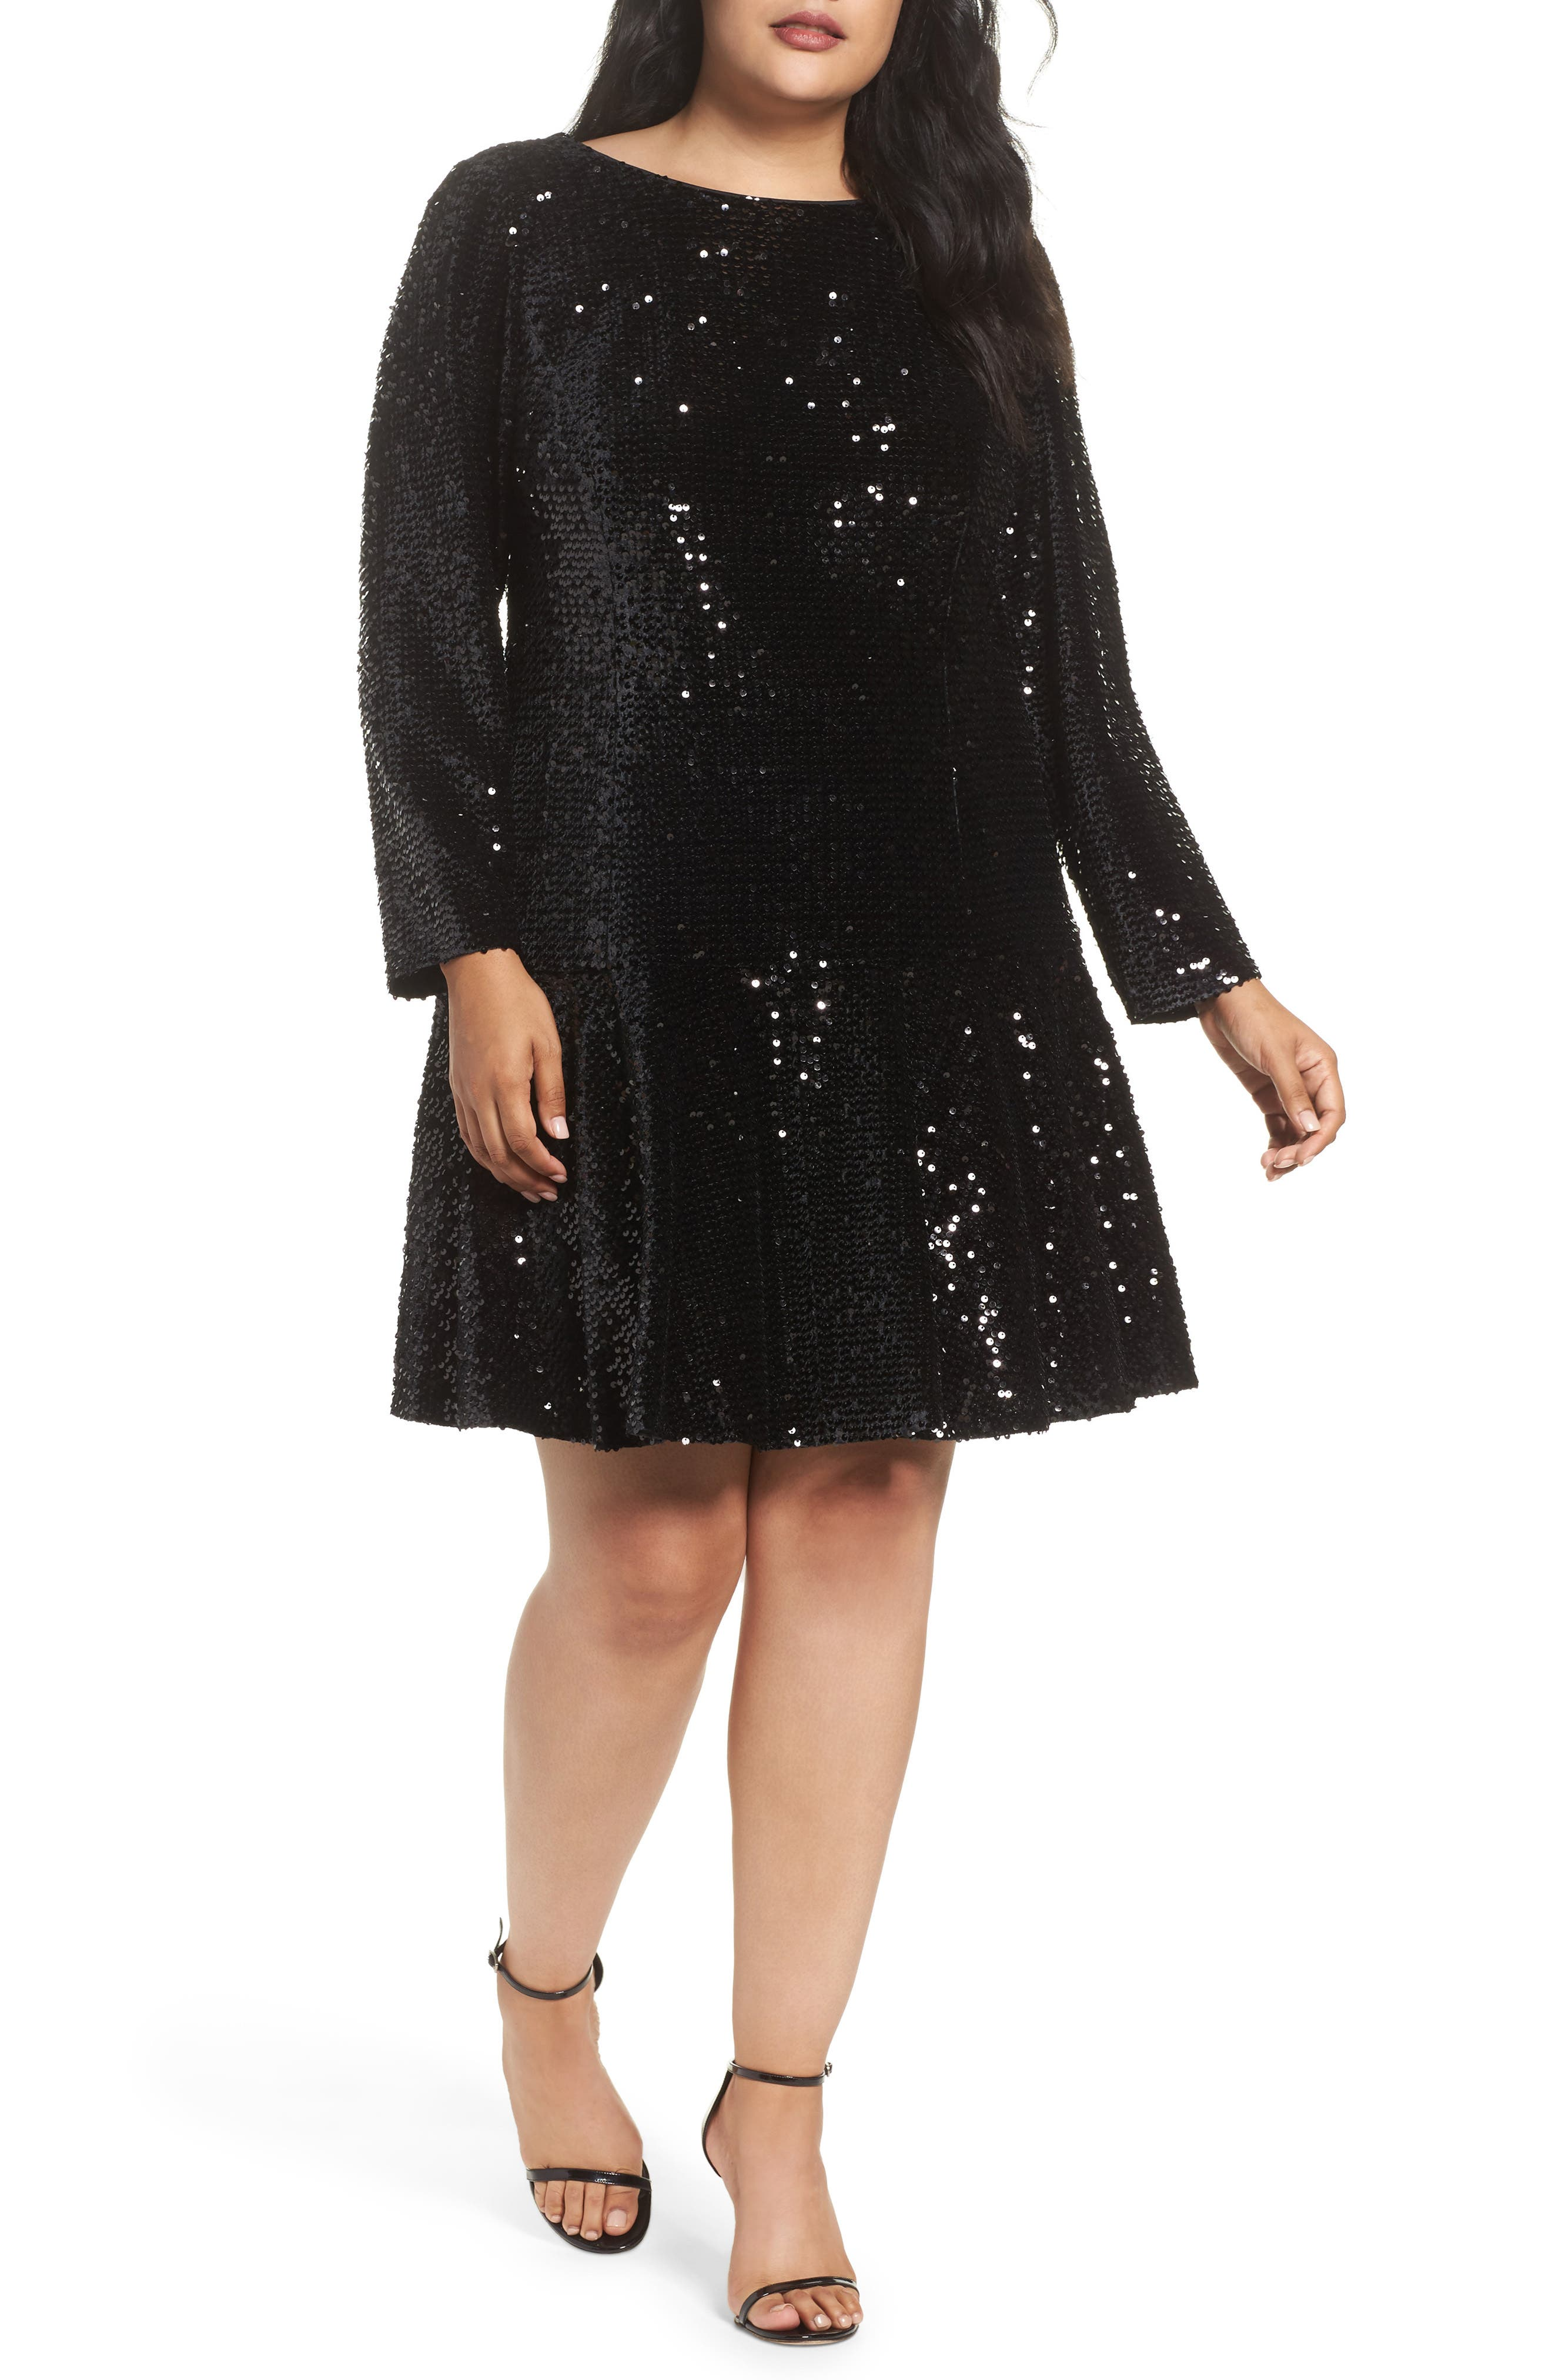 Alternate Image 1 Selected - Eliza J Sequin Drop Waist Dress (Plus Size)